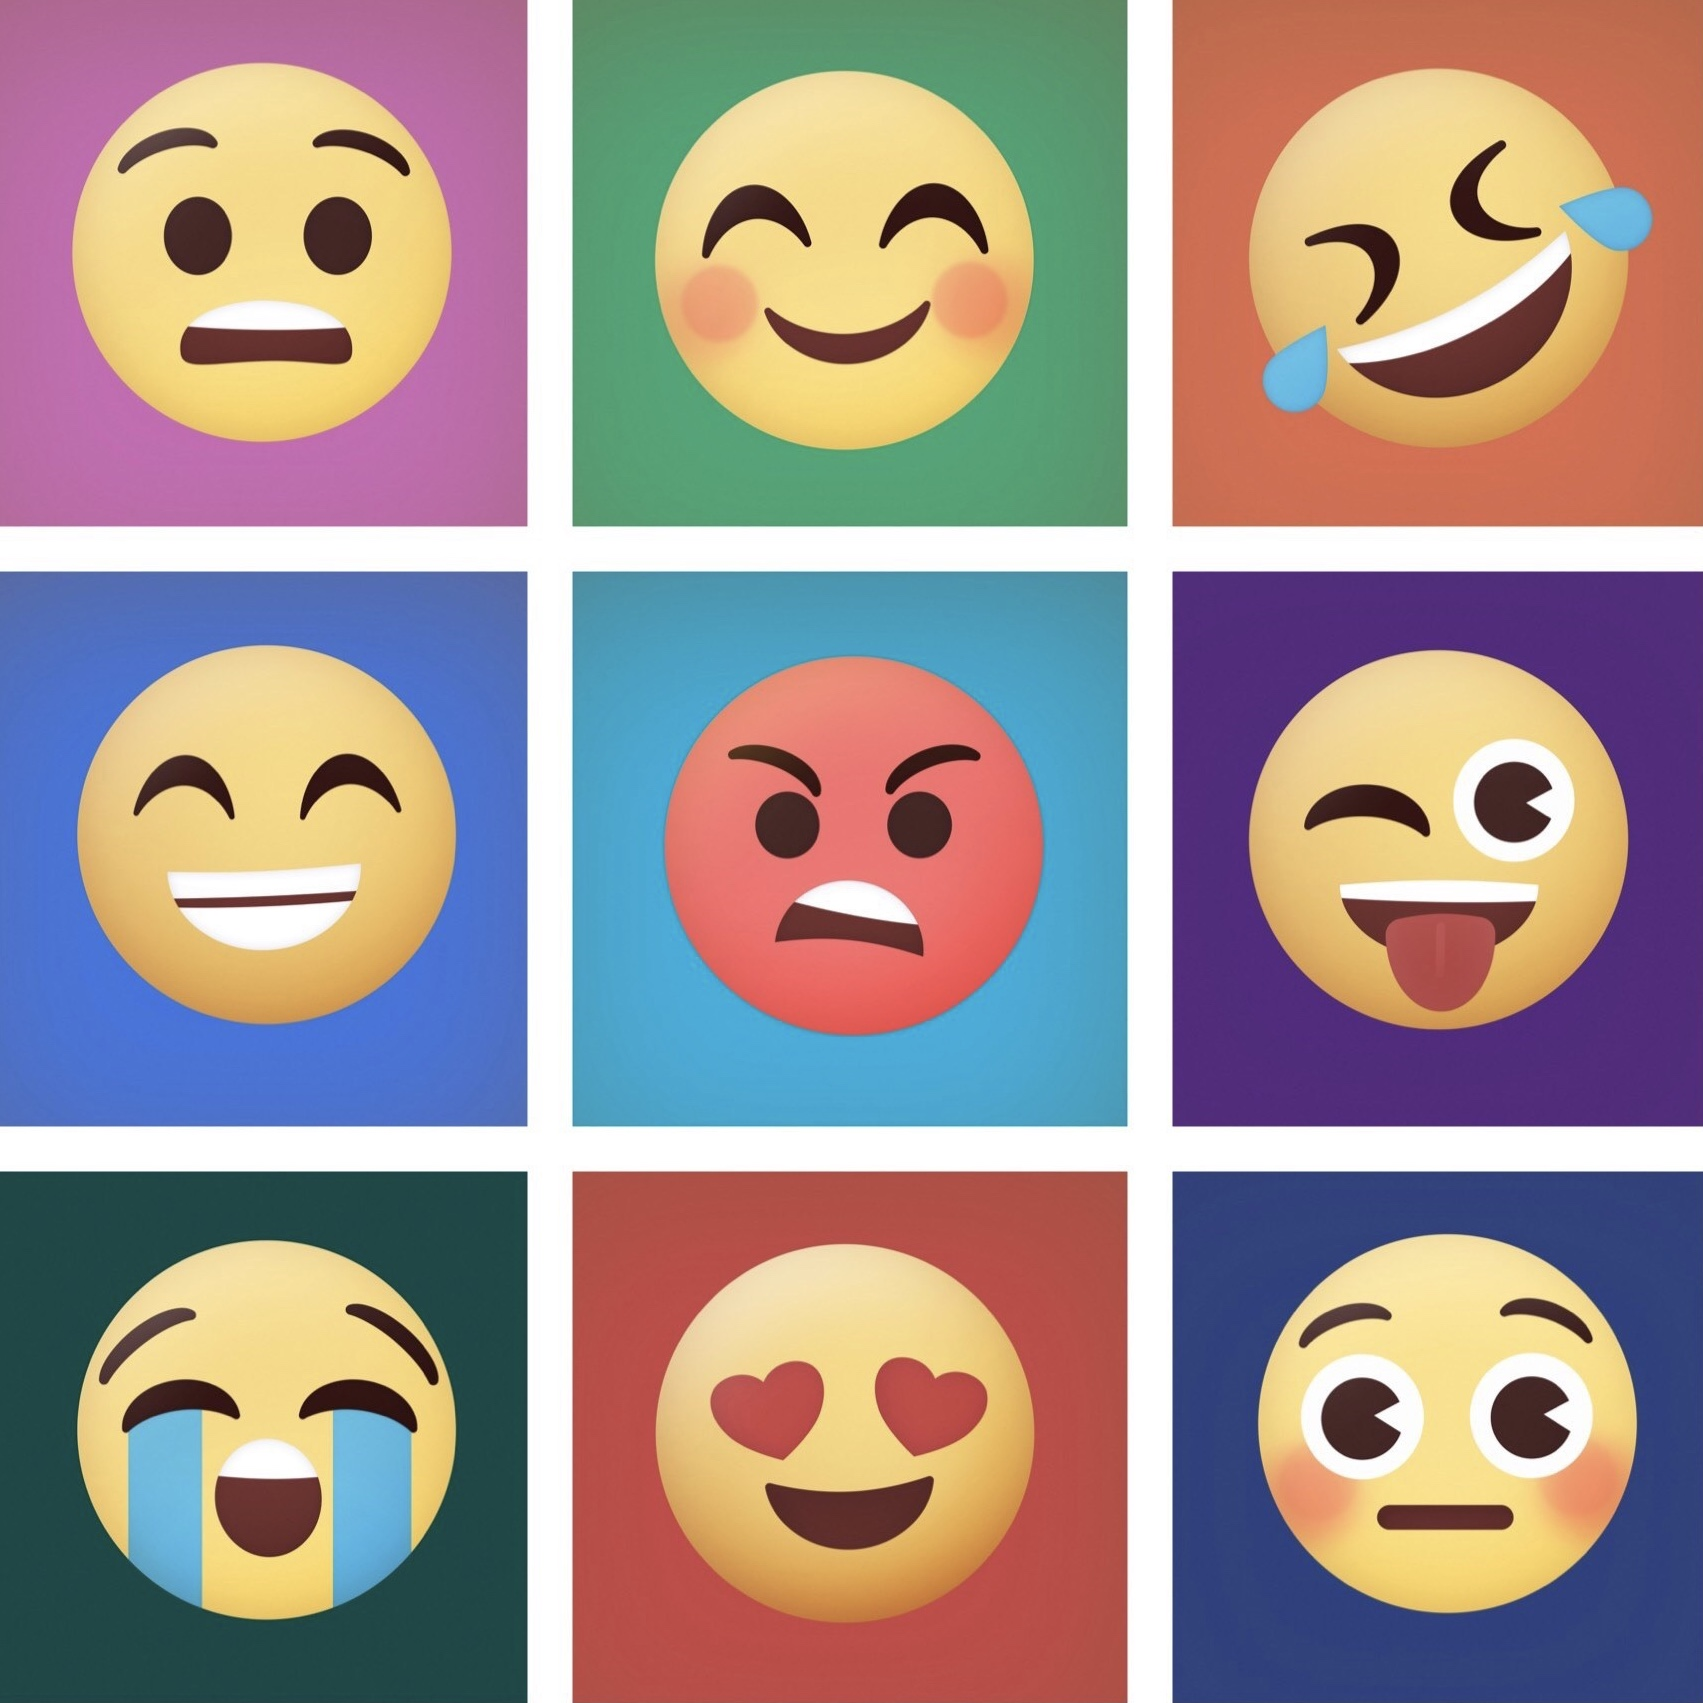 Emoji Faces on Colorful Grid